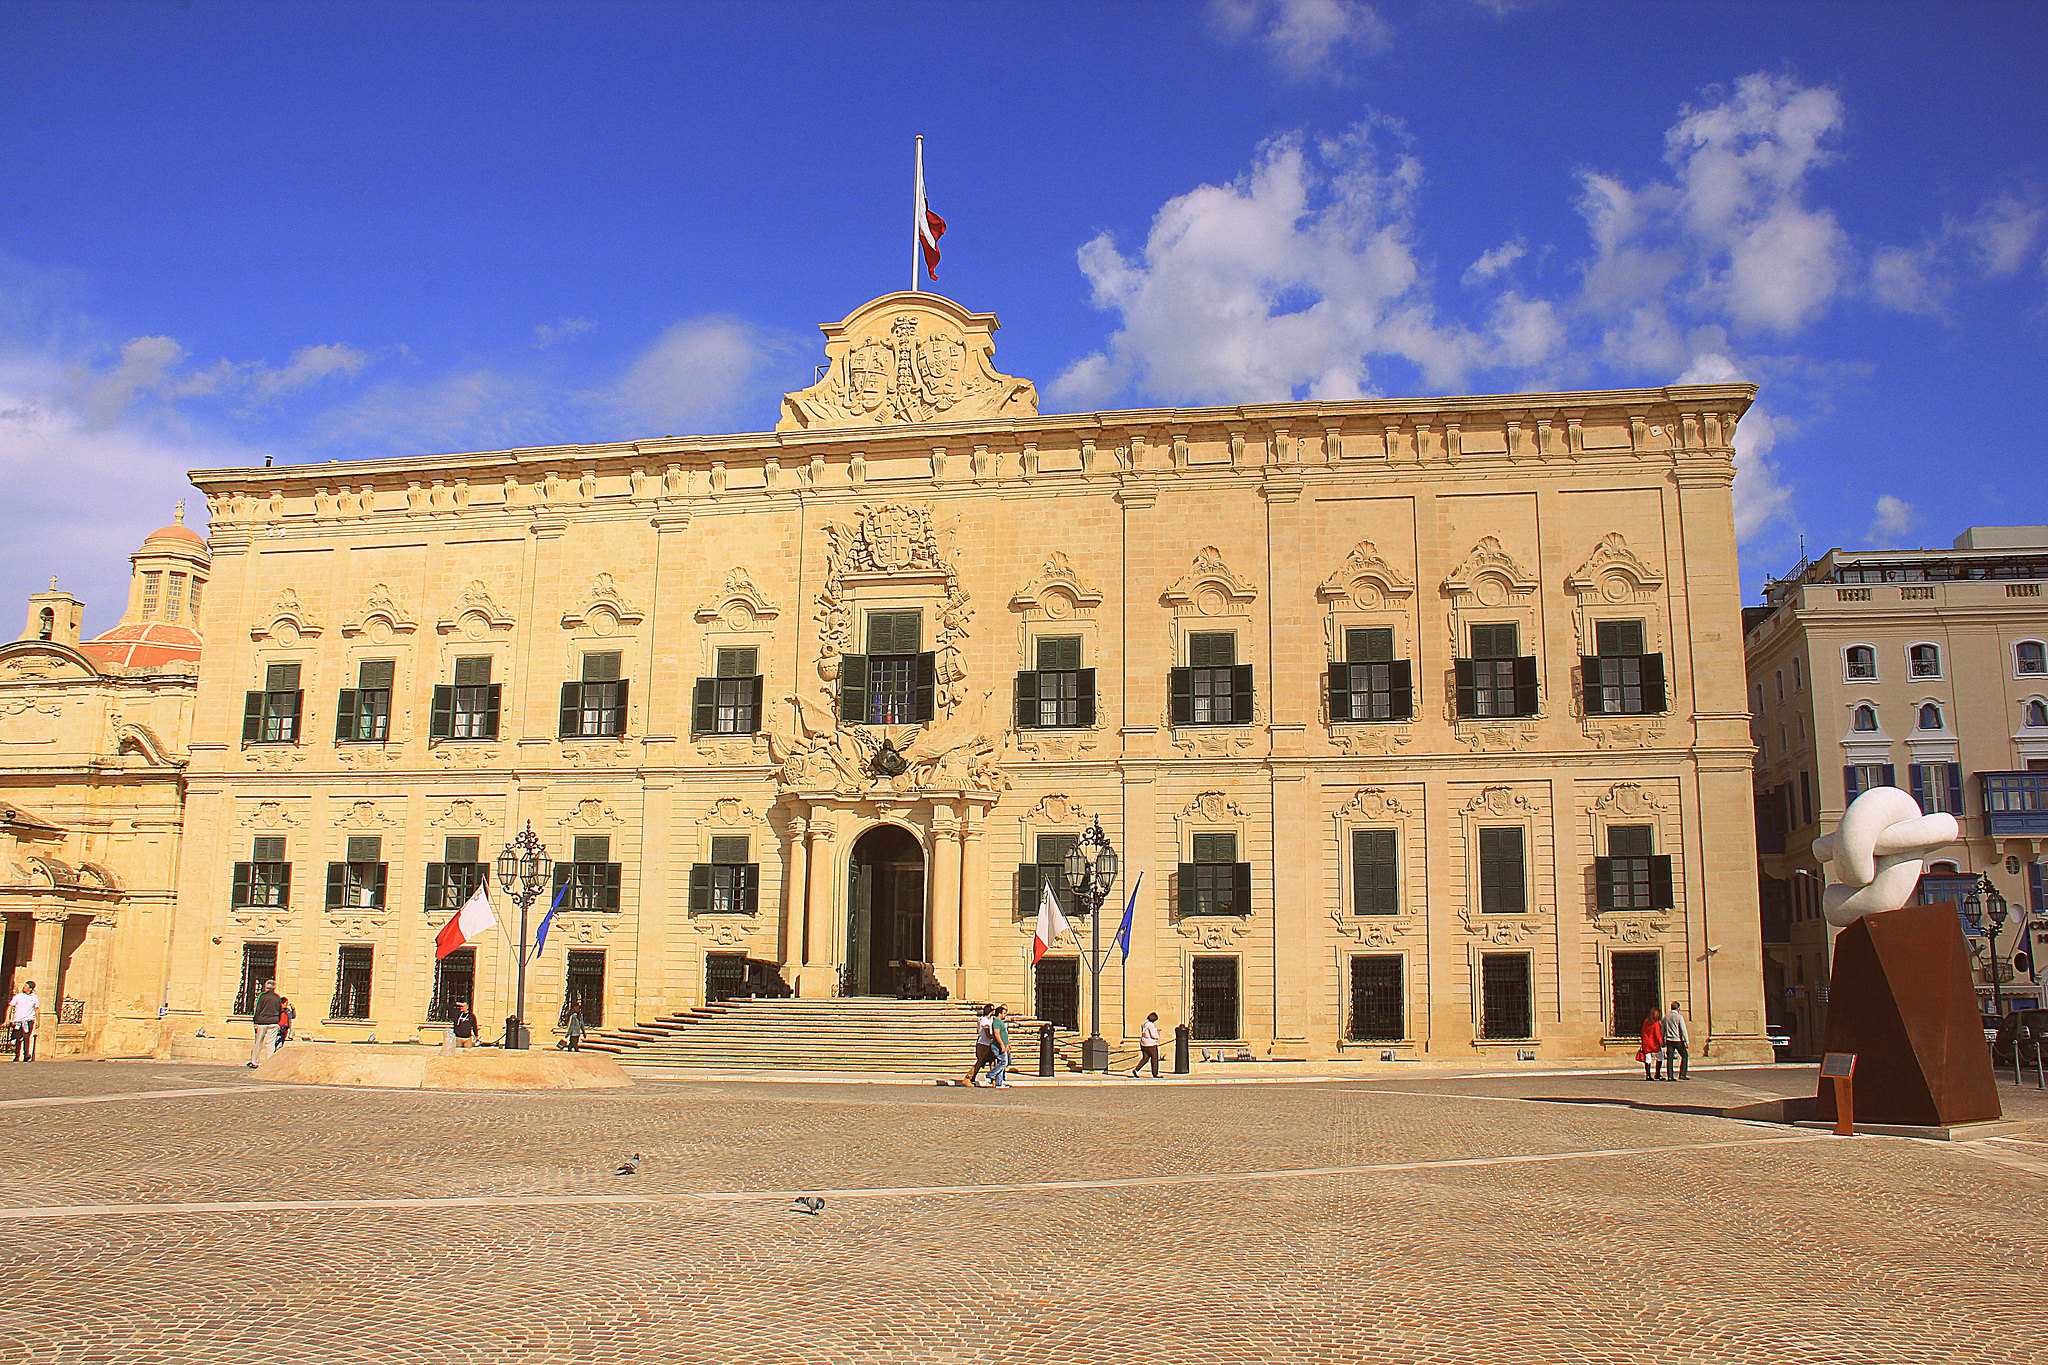 Valletta is famous for golden hued buildings